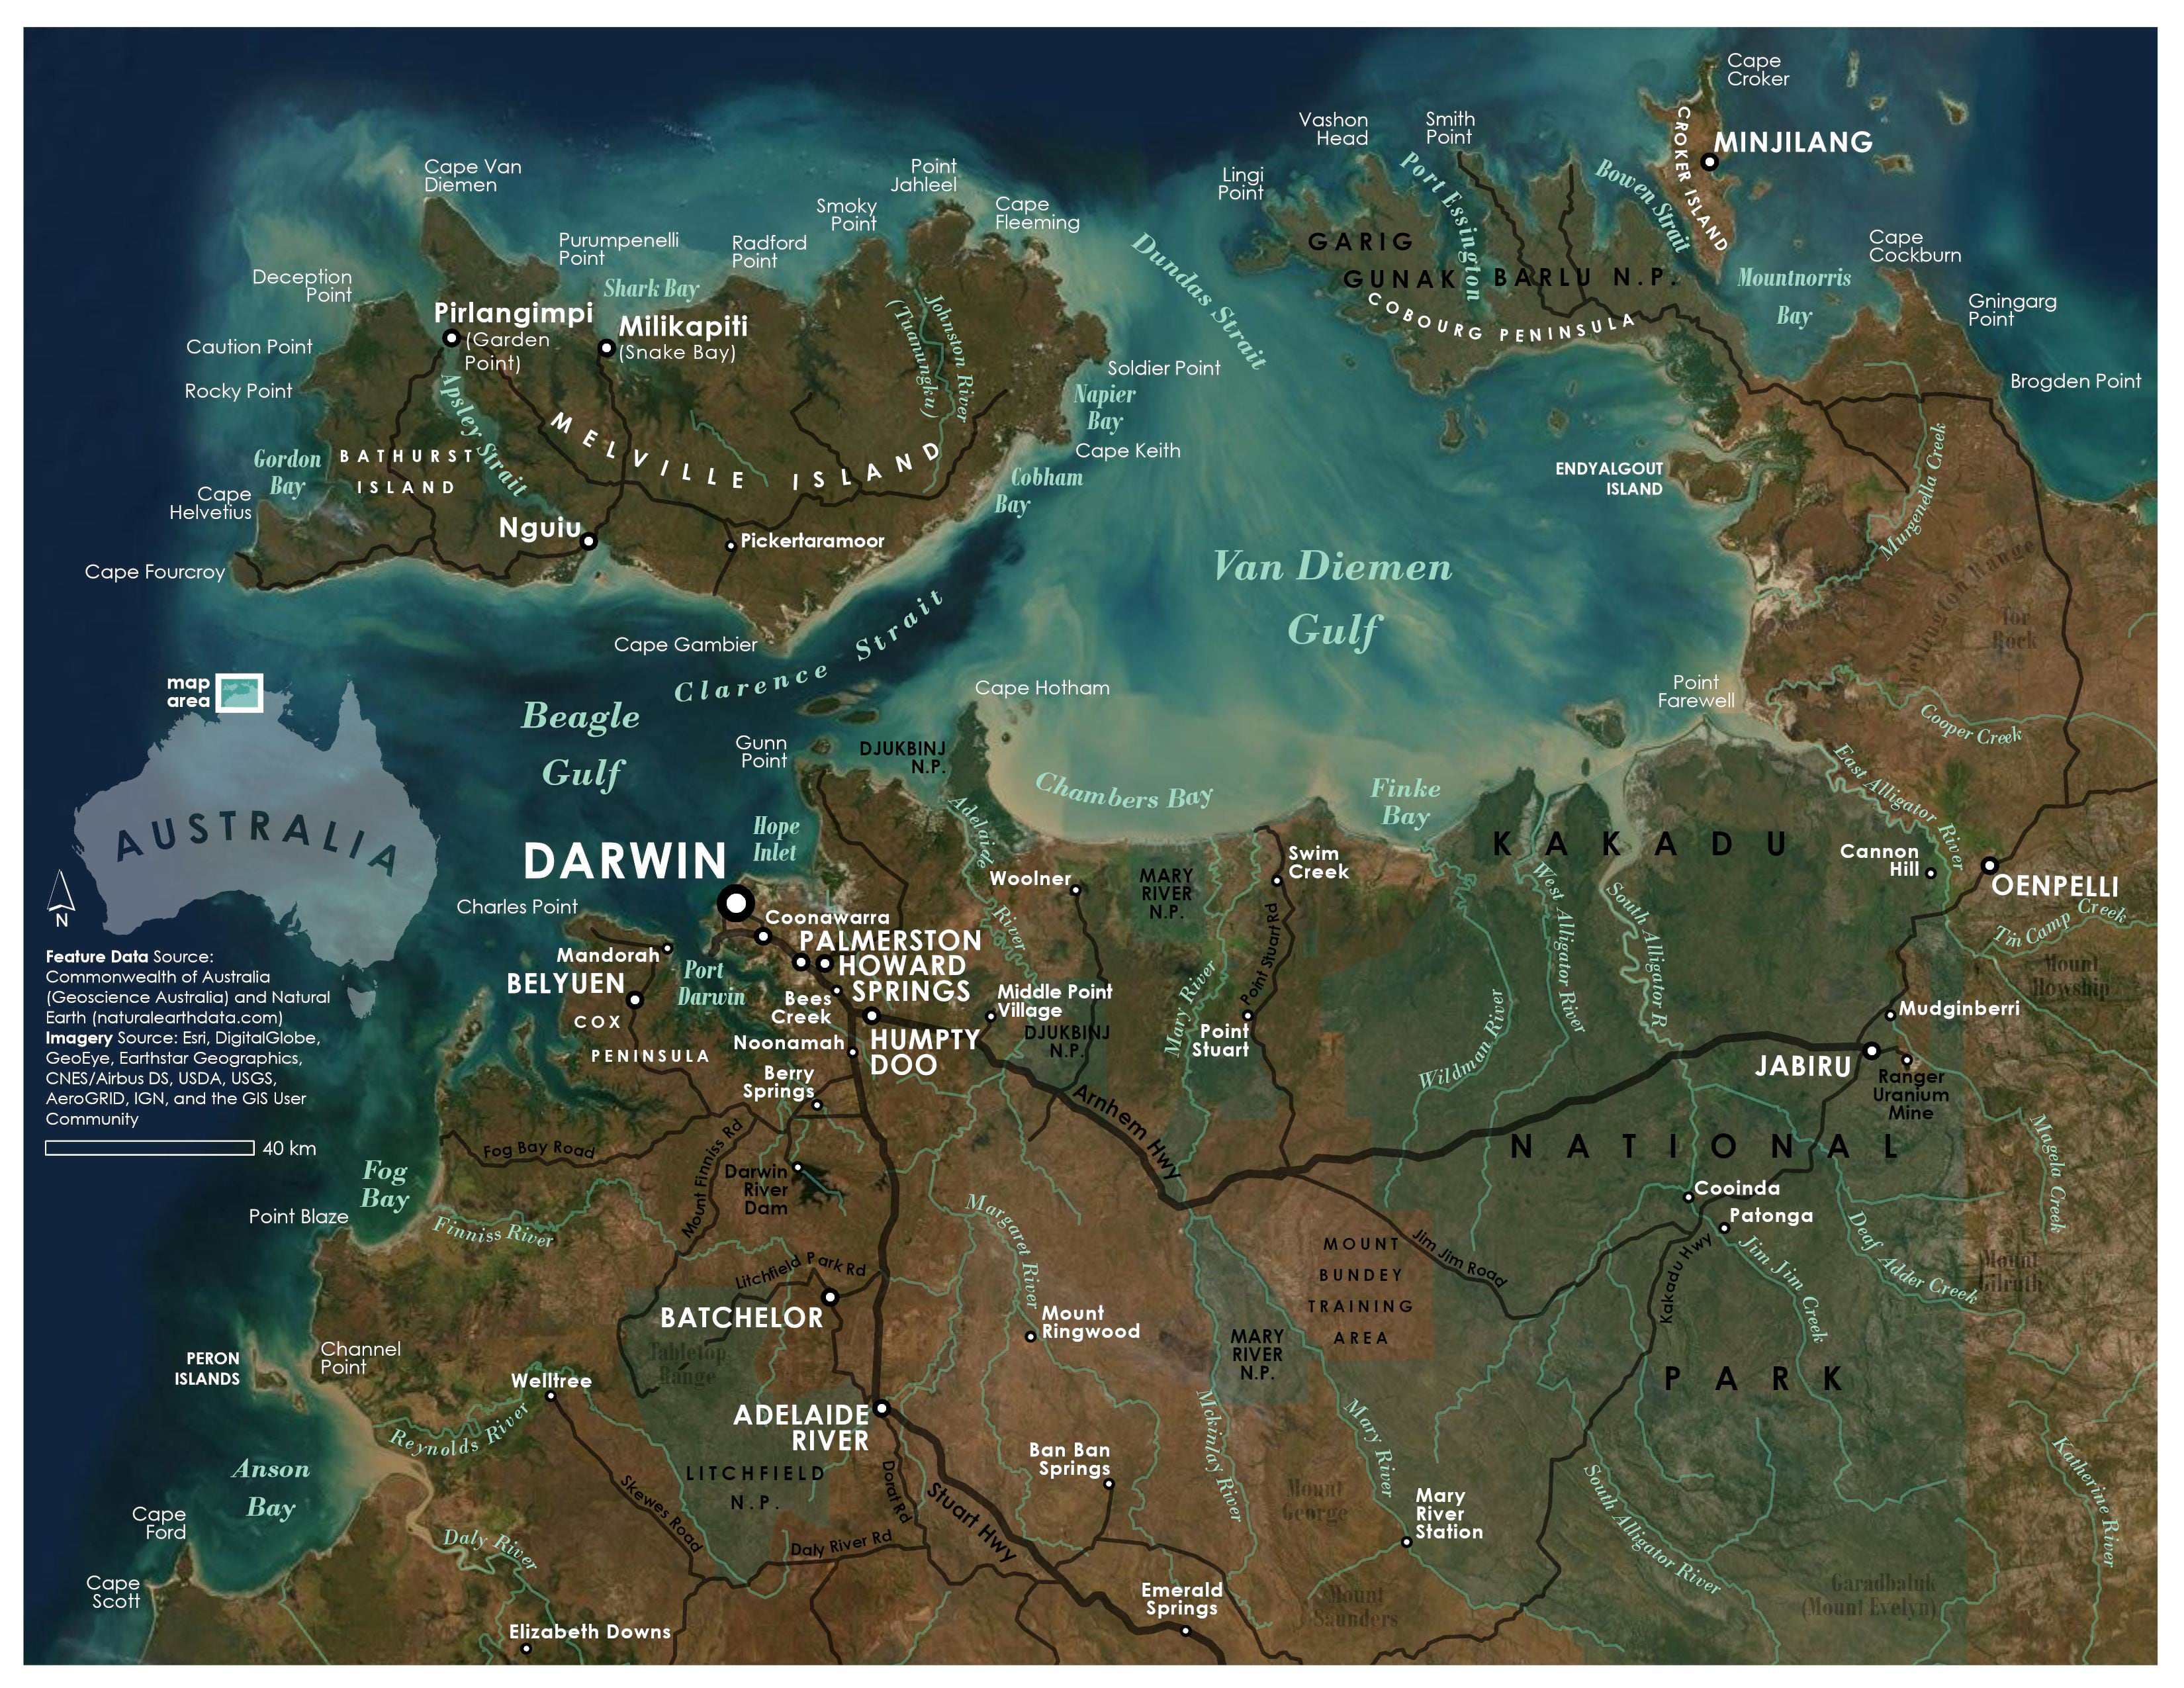 Map of Darwin, Australia and surrounding area